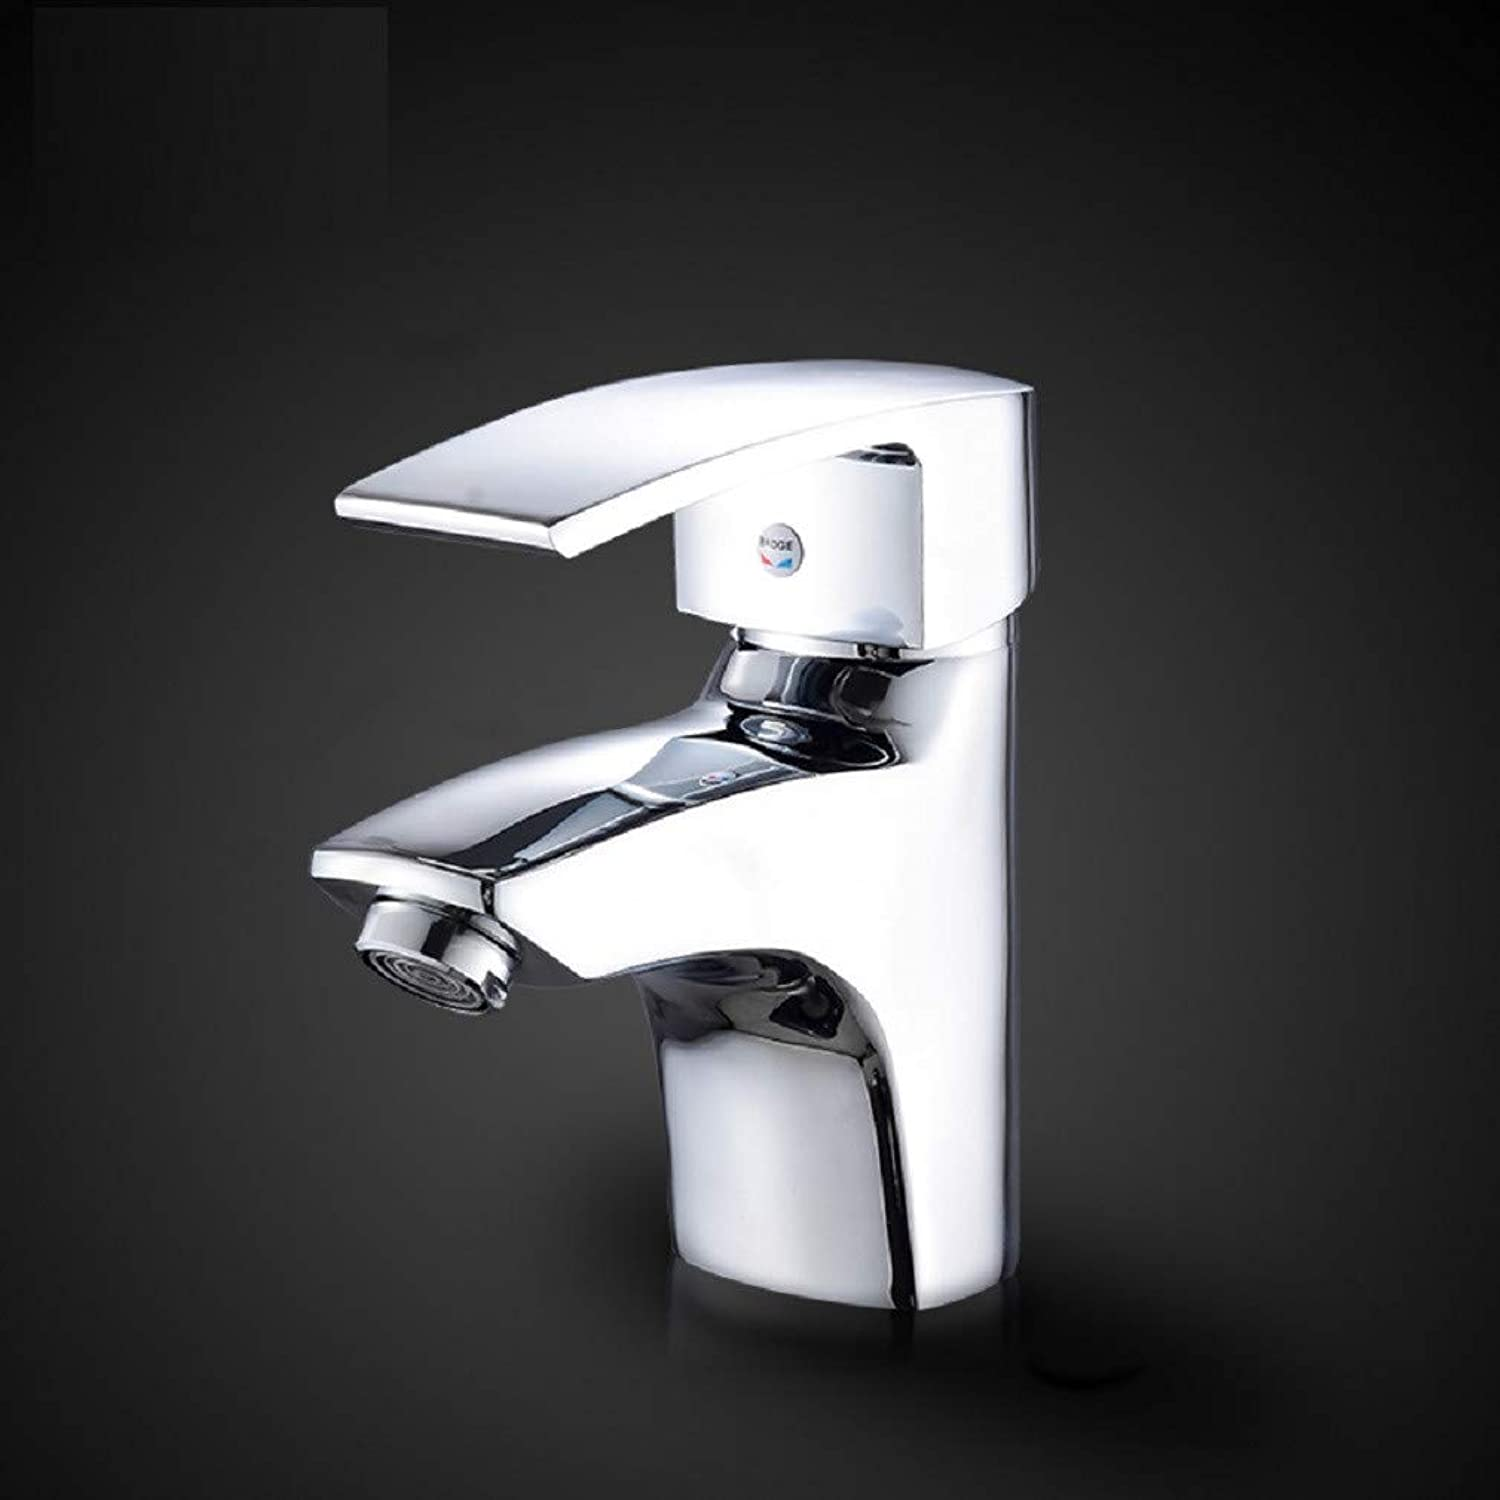 Bathroom Taps Washbasin Faucet Wash Basin Hot and Cold Water Faucet Bathroom Sink Tap Basin Sink Mixer Tap